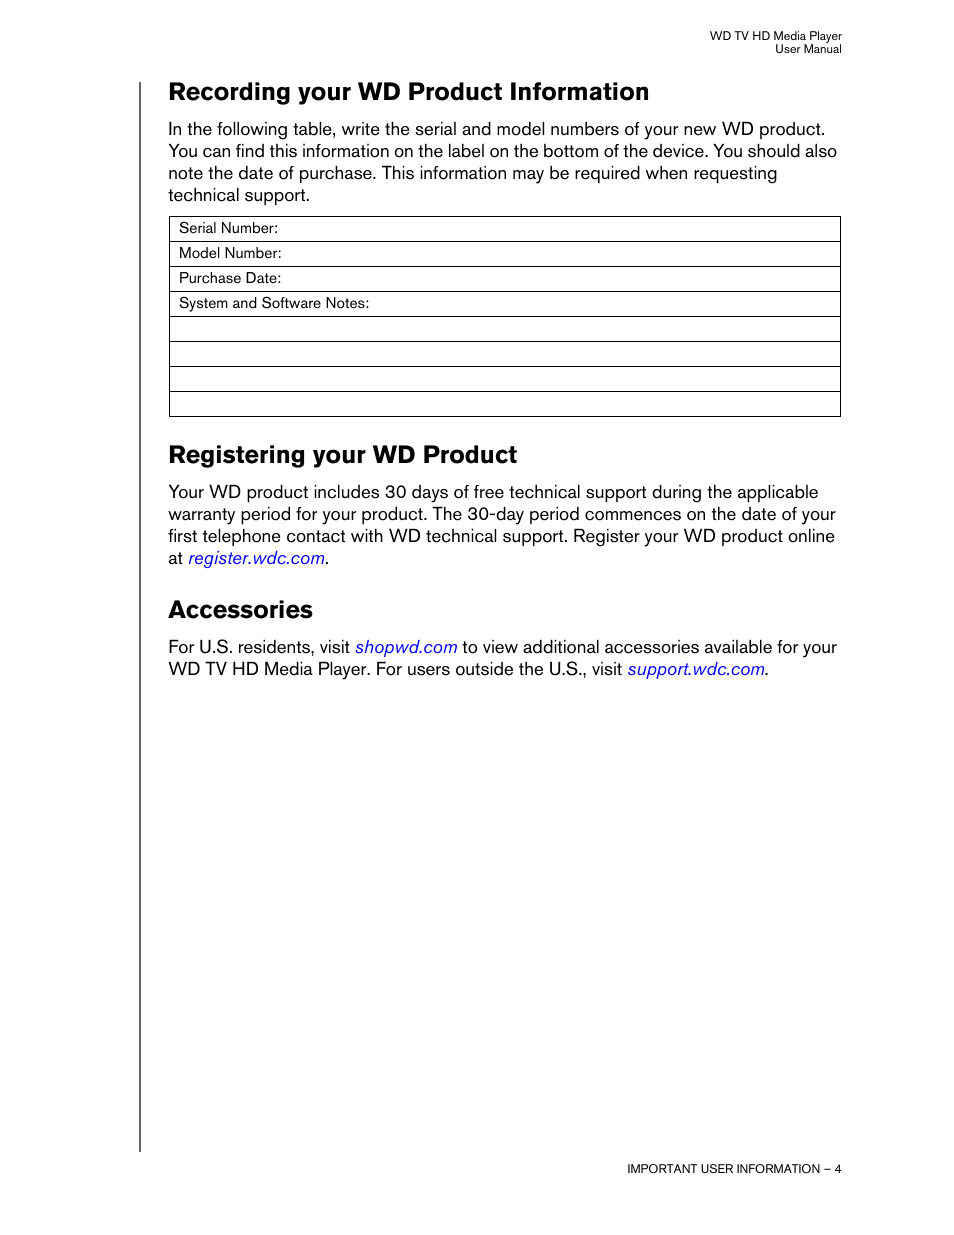 Recording your wd product information, Registering your wd